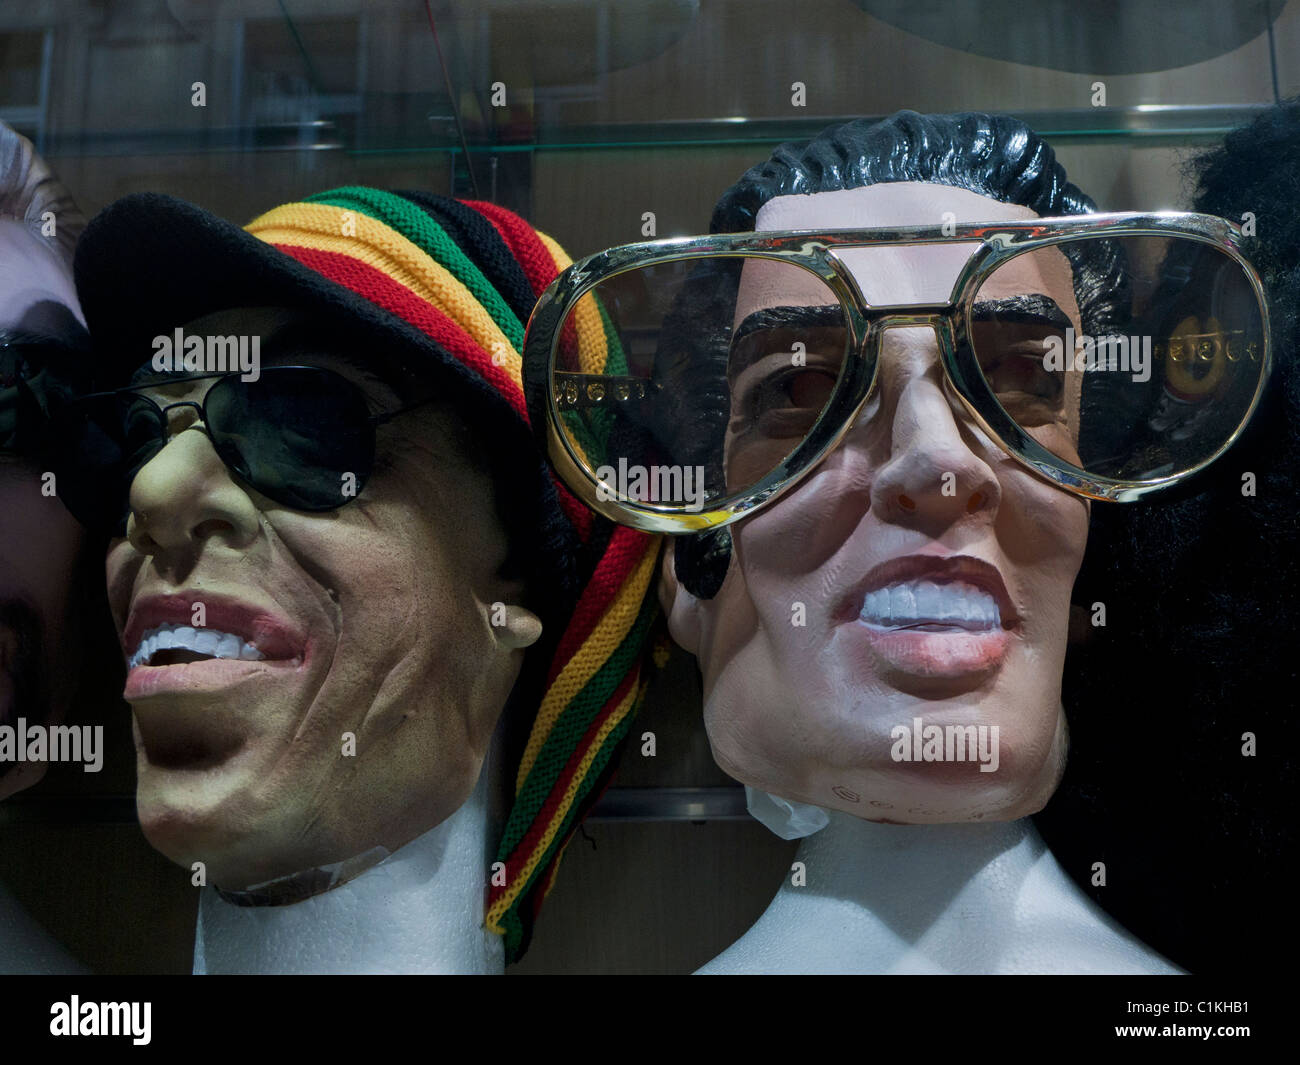 Comical rock and pop star masks in shop, Paris, France - Stock Image